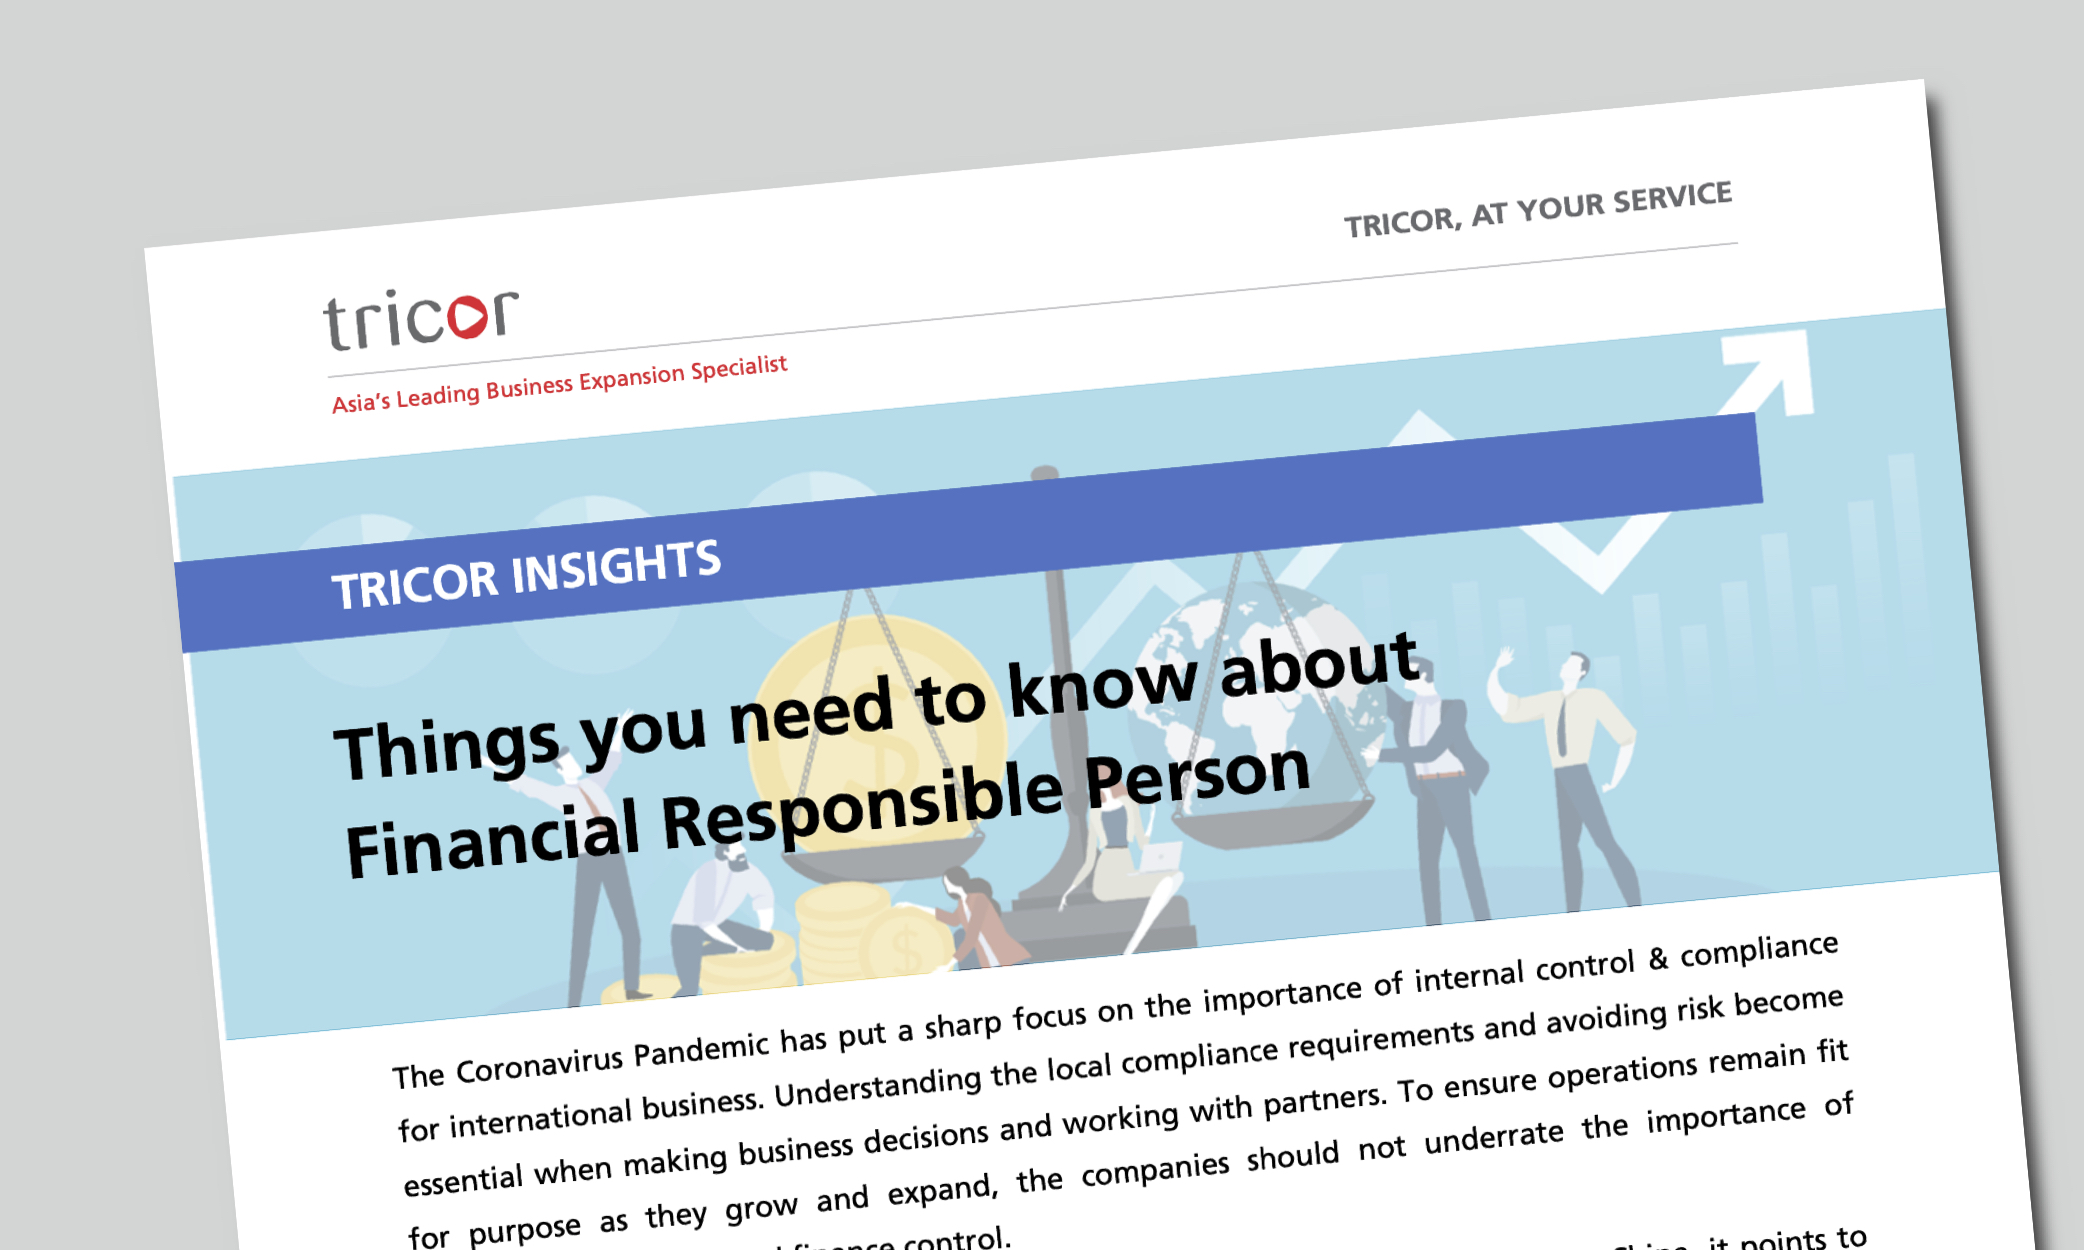 Tricor Insights: Things you need to know about Financial Responsible Person